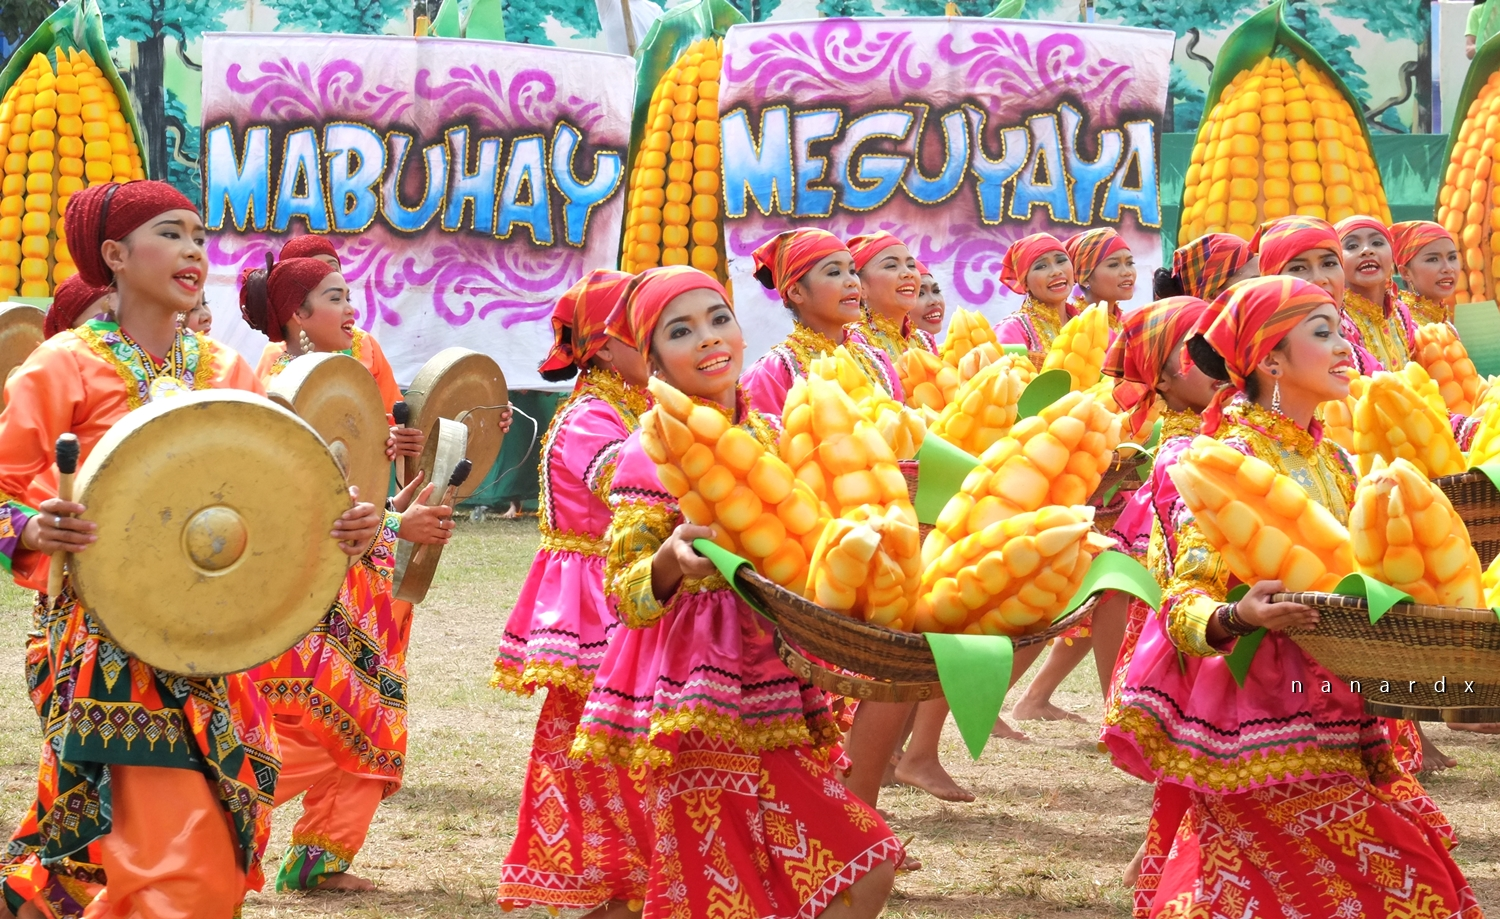 Meguyaya Festival: A celebration of abundance, peace and unity in Upi